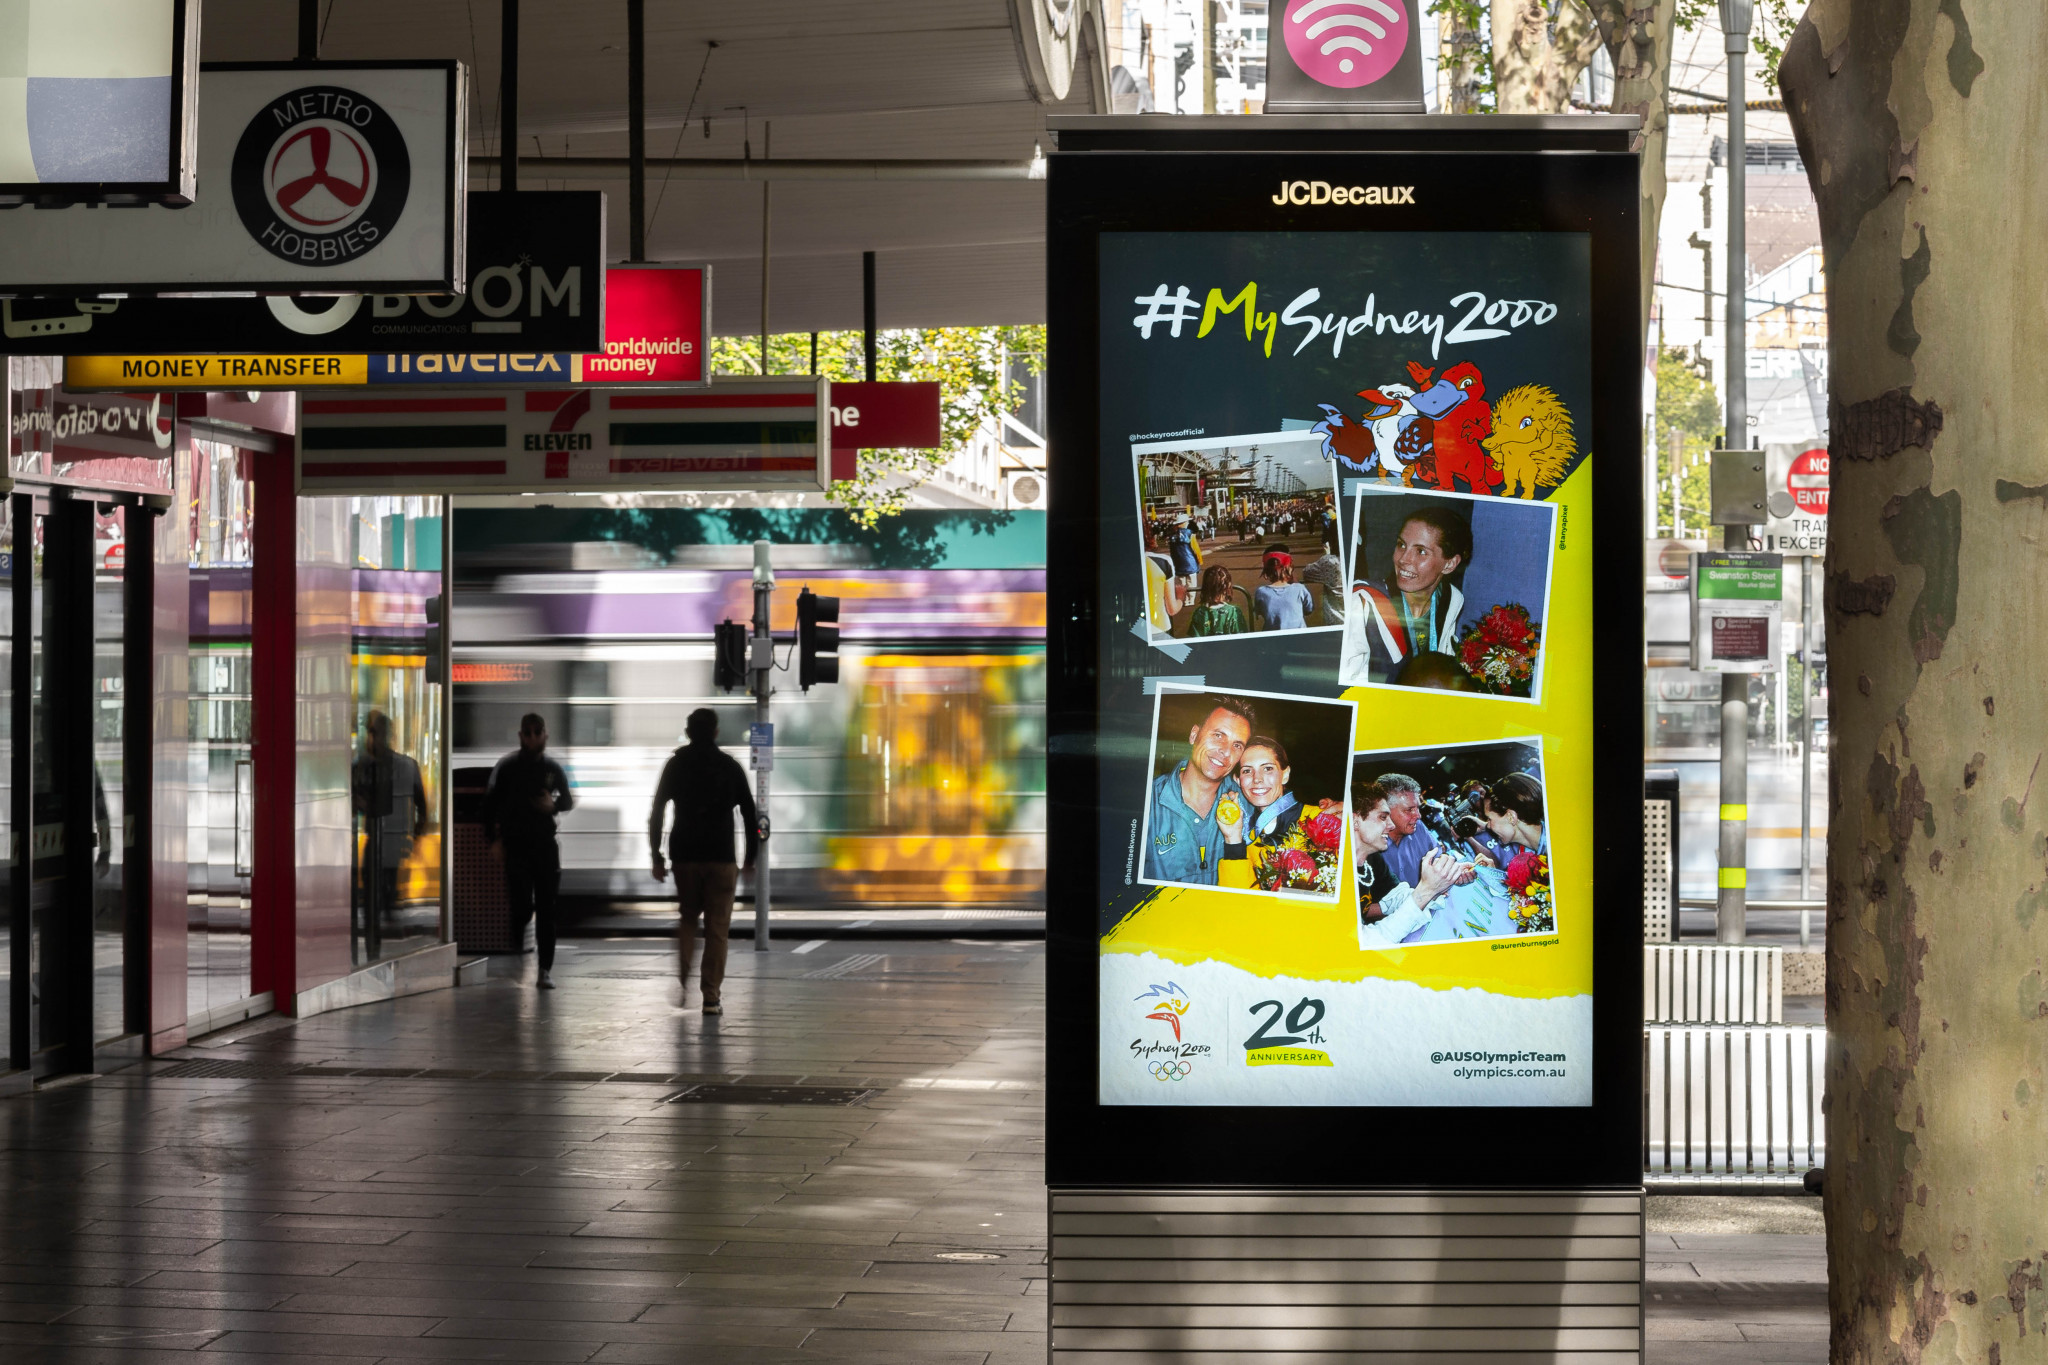 Australian Olympic Committee partners with JCDecaux for Sydney 2000 social campaign